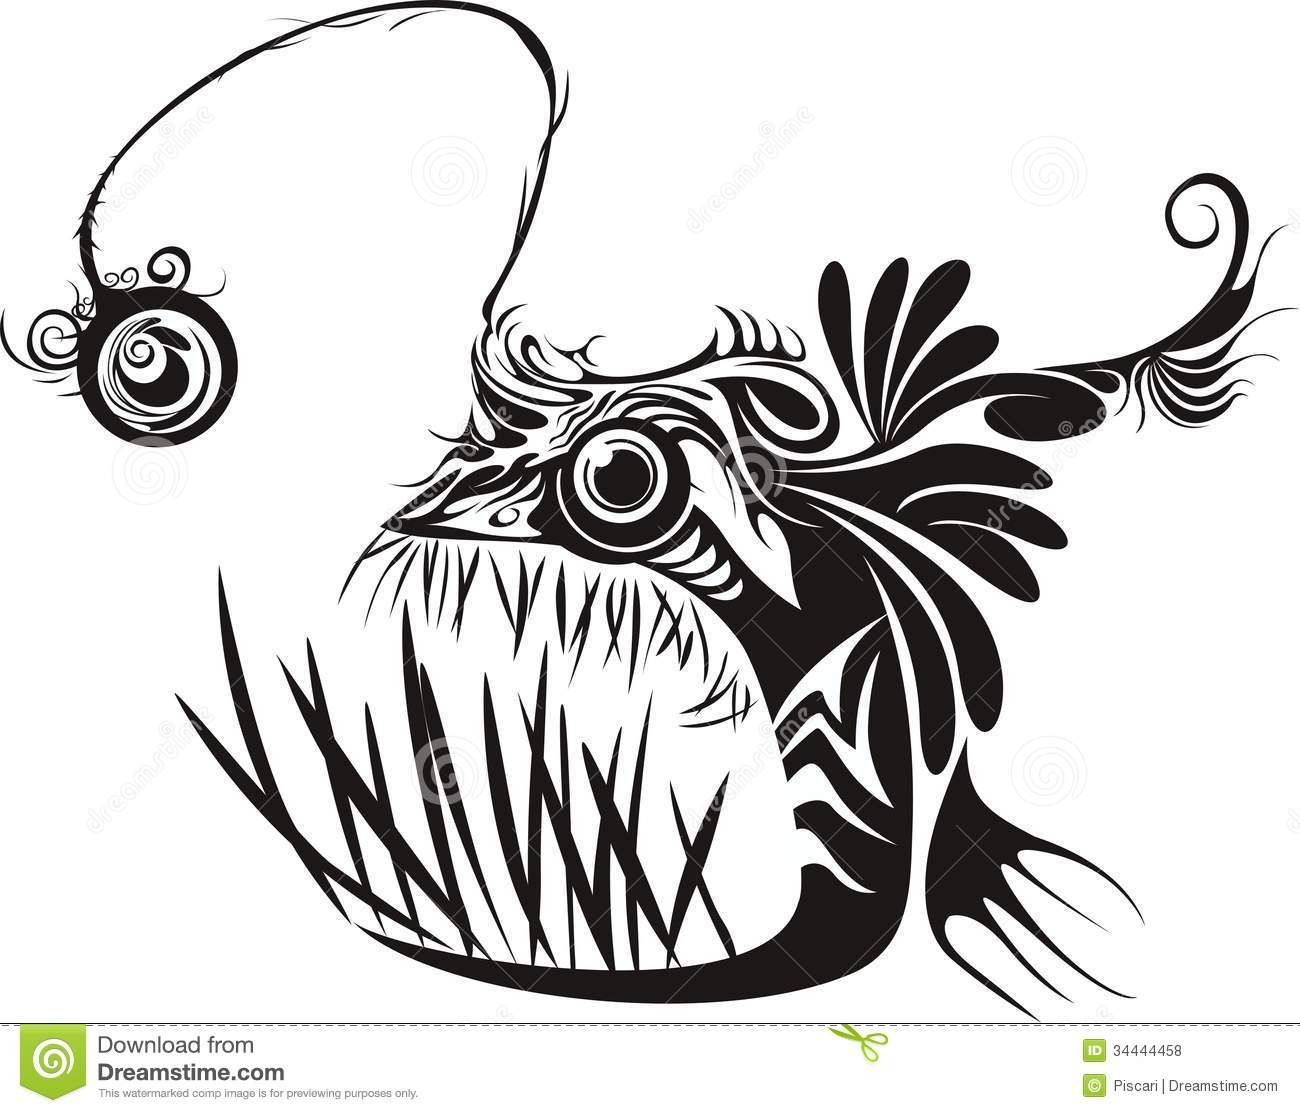 Scary Black And White Angler Fish Tattoo Design Angler Fish Tattoo Angler Fish Drawing Angler Fish